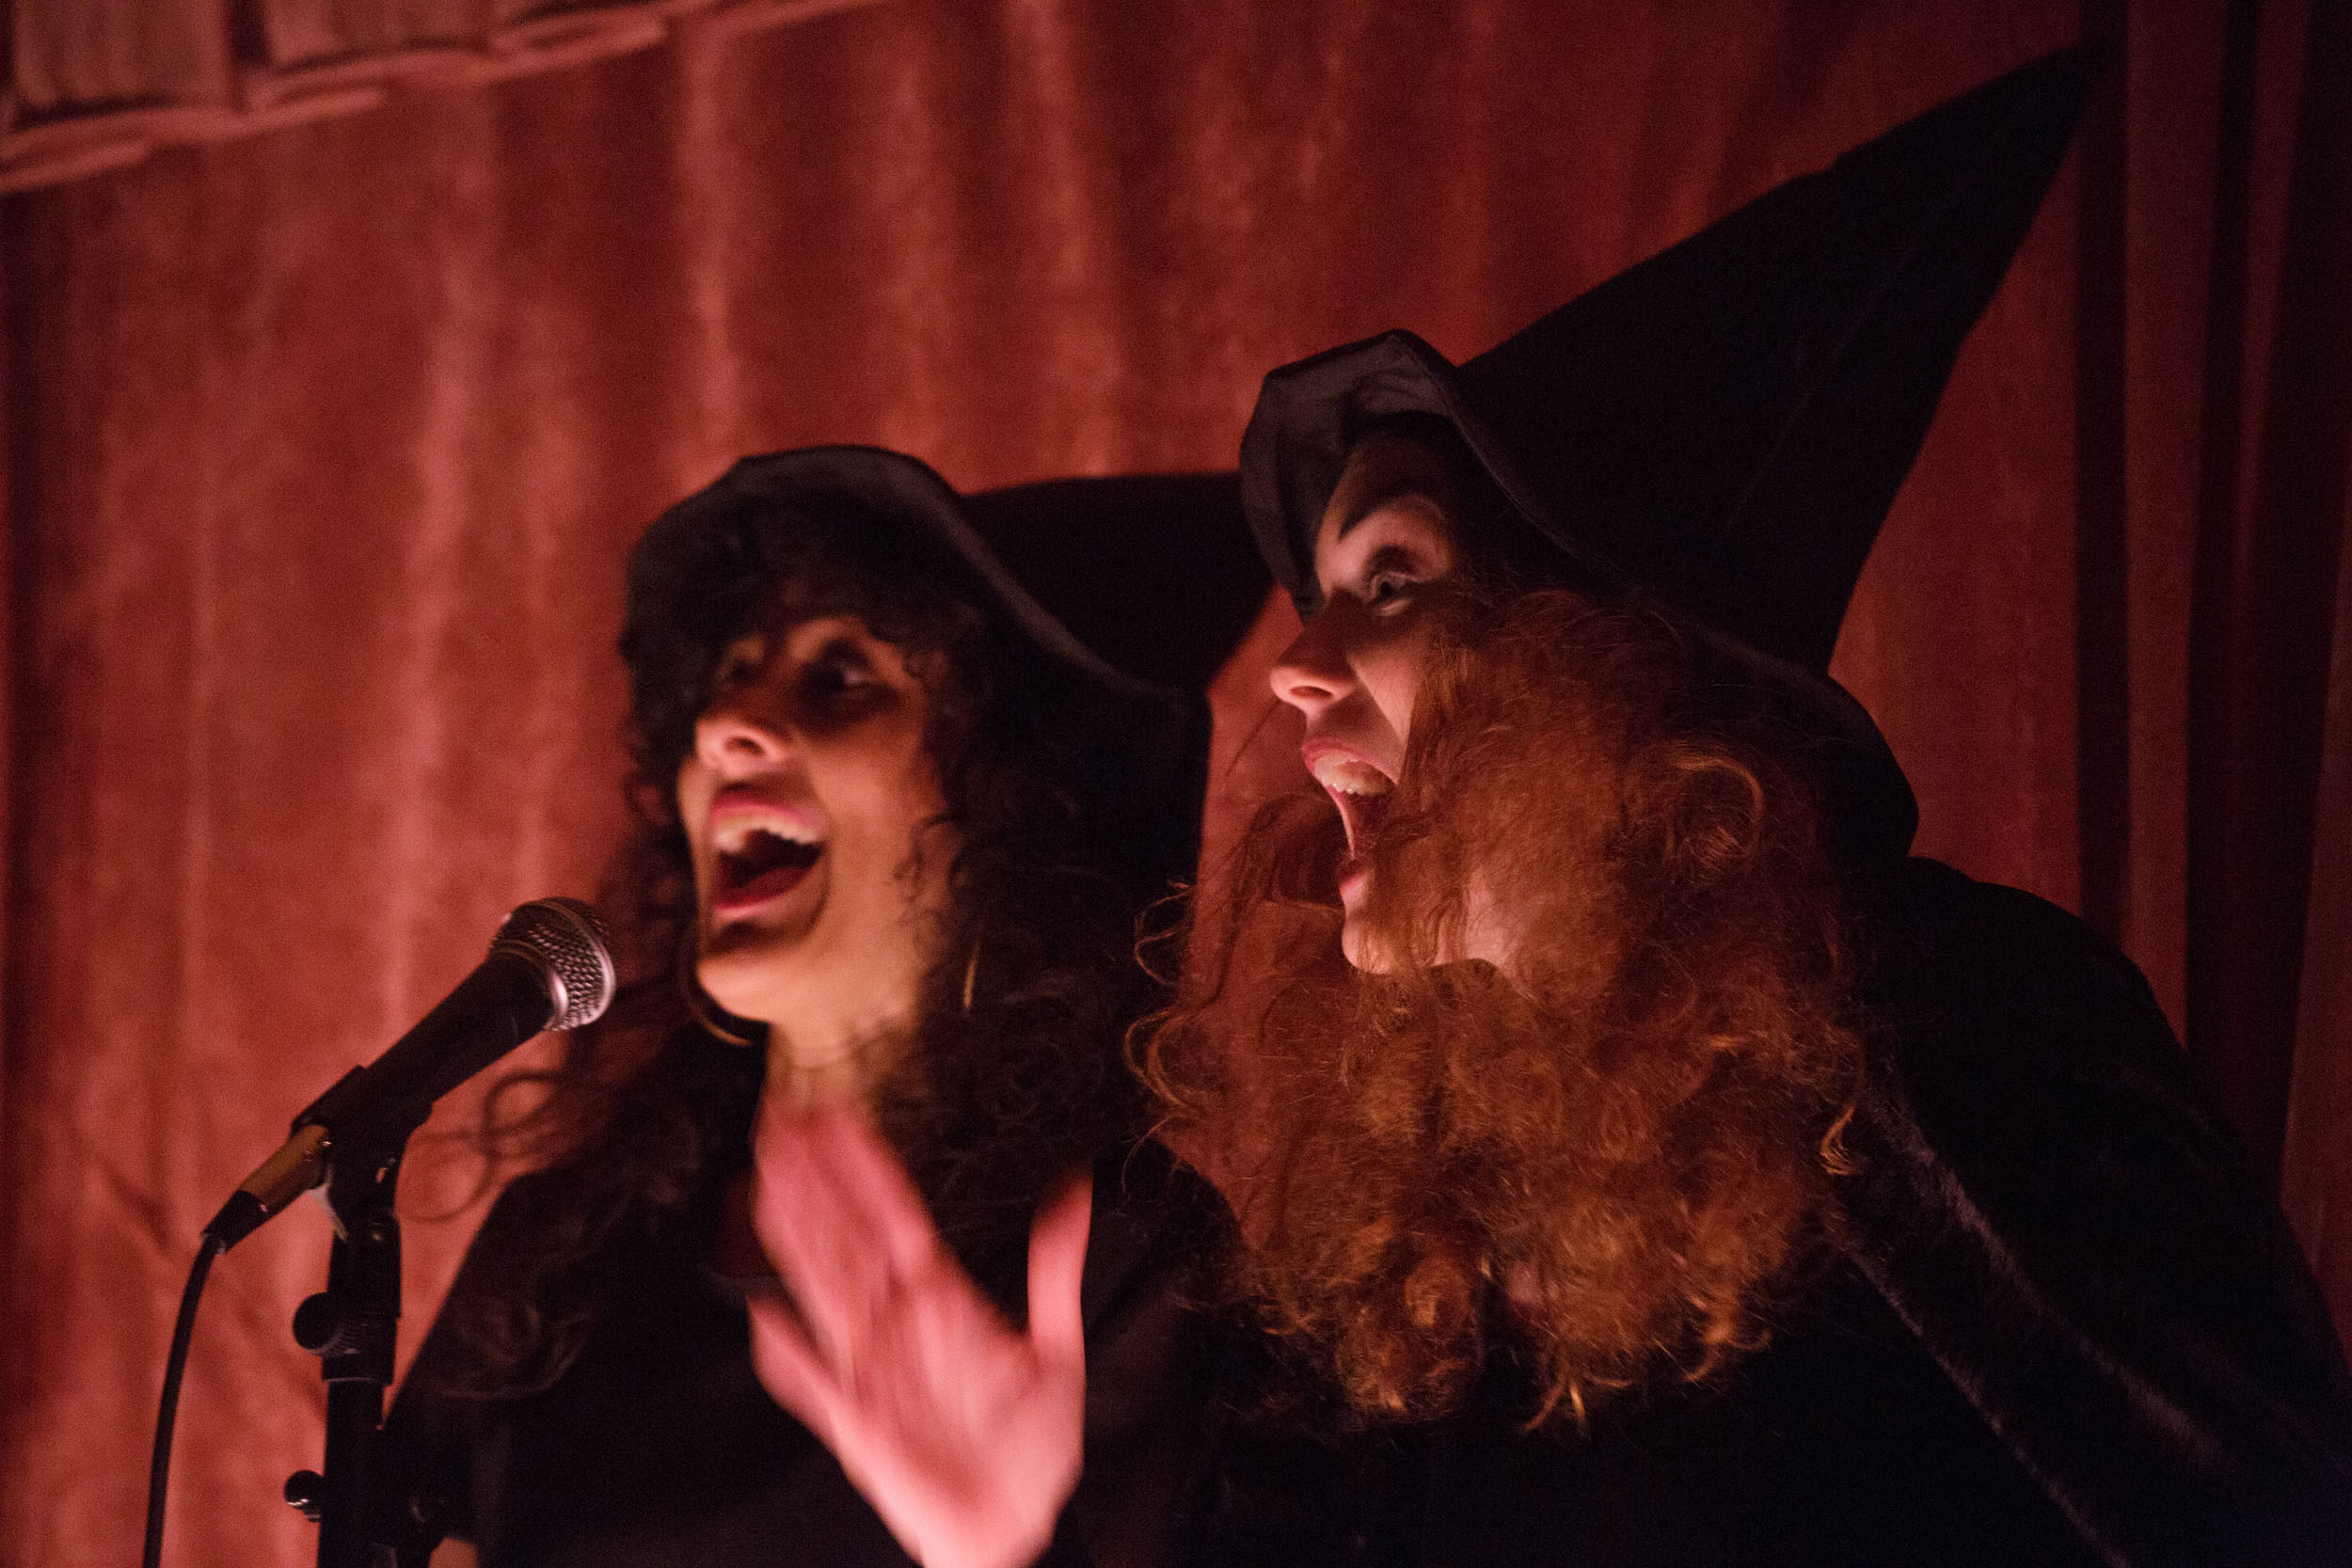 Two people dressed in black pointy hats animatedly speaking into a mic in front of a red curtain